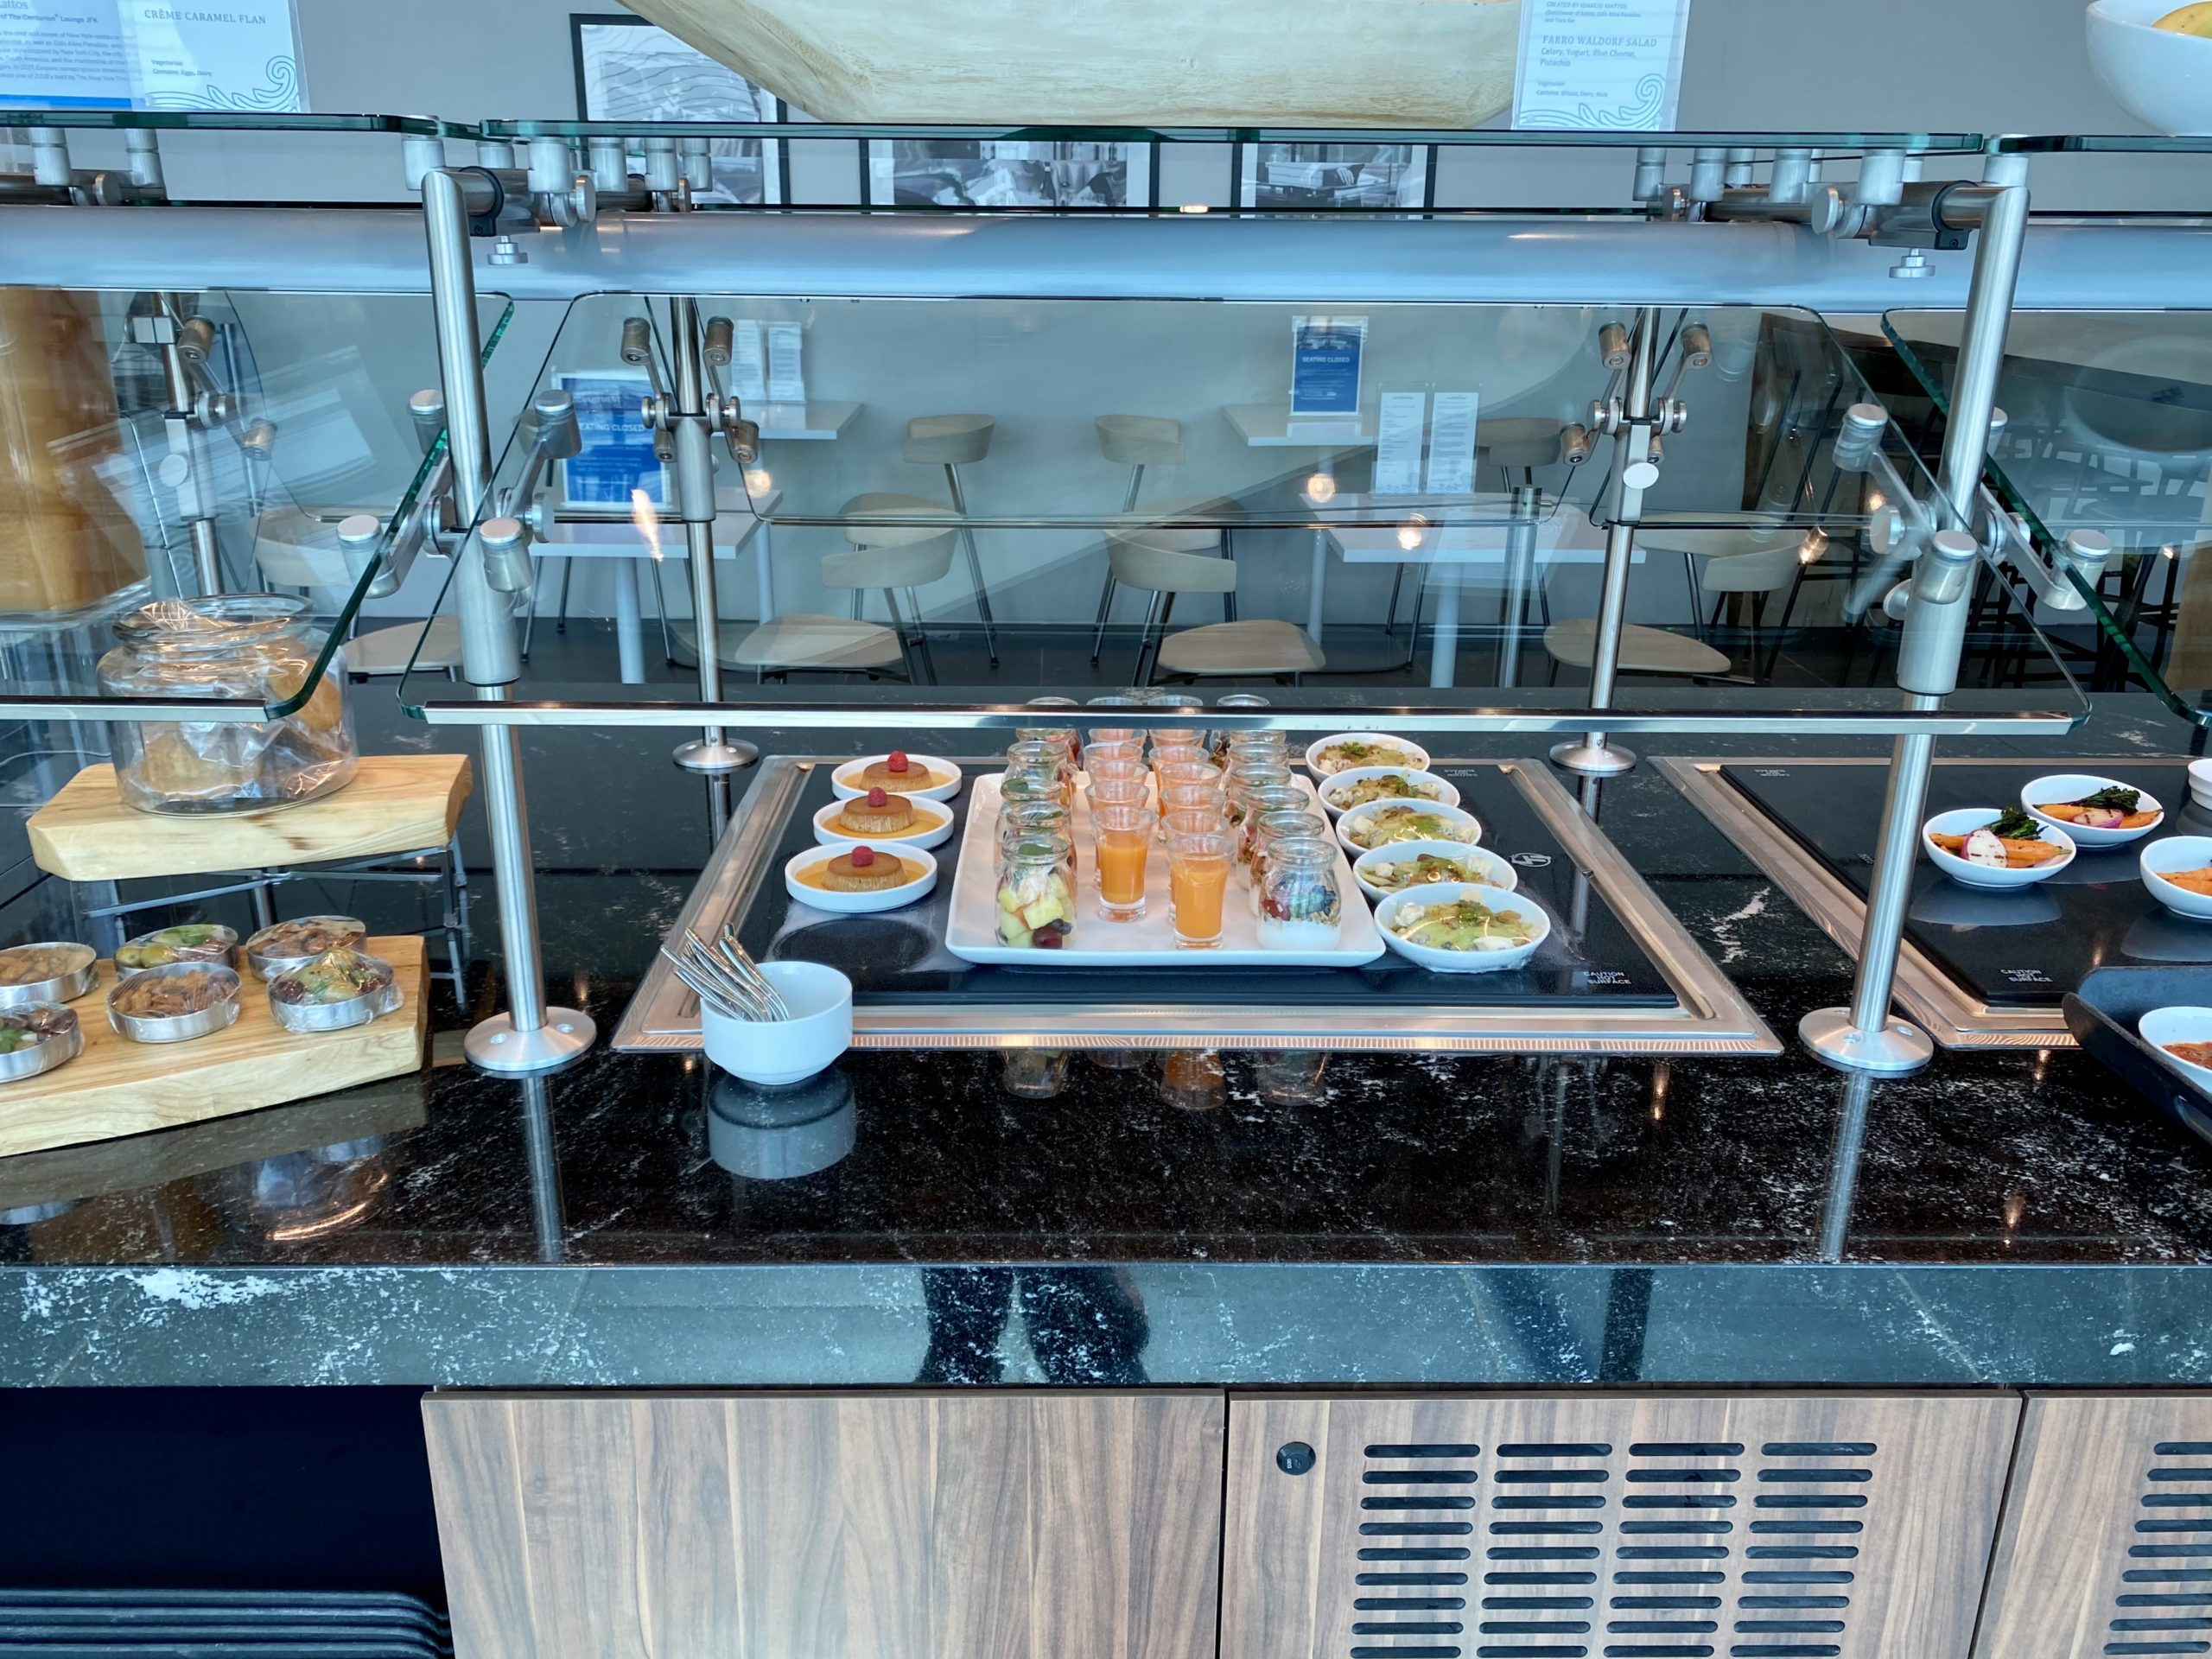 jfk centurion lounge buffet